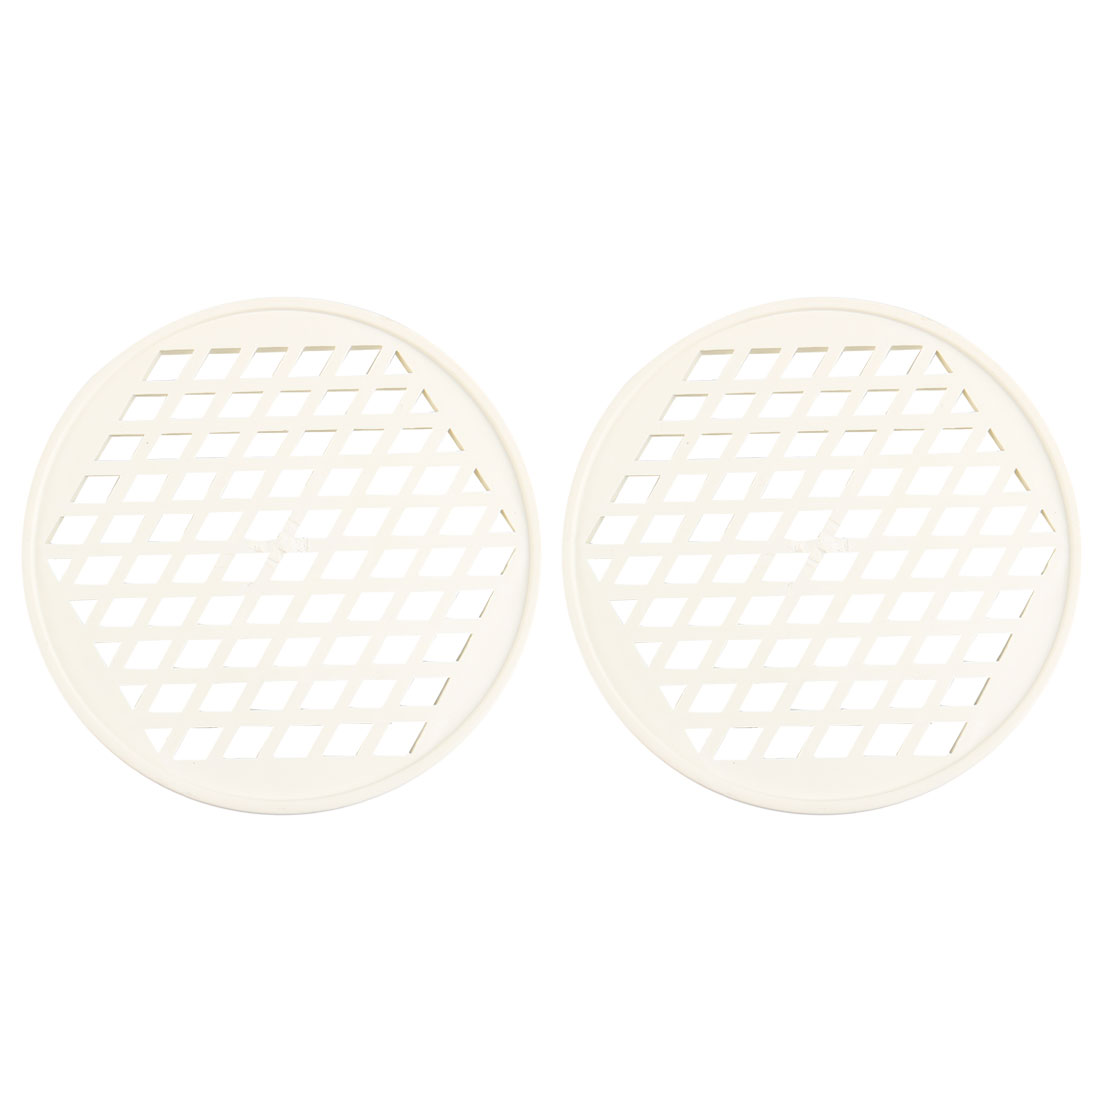 "2pcs 5.87"" Floor Drain Cover Hair Catcher Sinks Strainer Bathroom Kitchen"